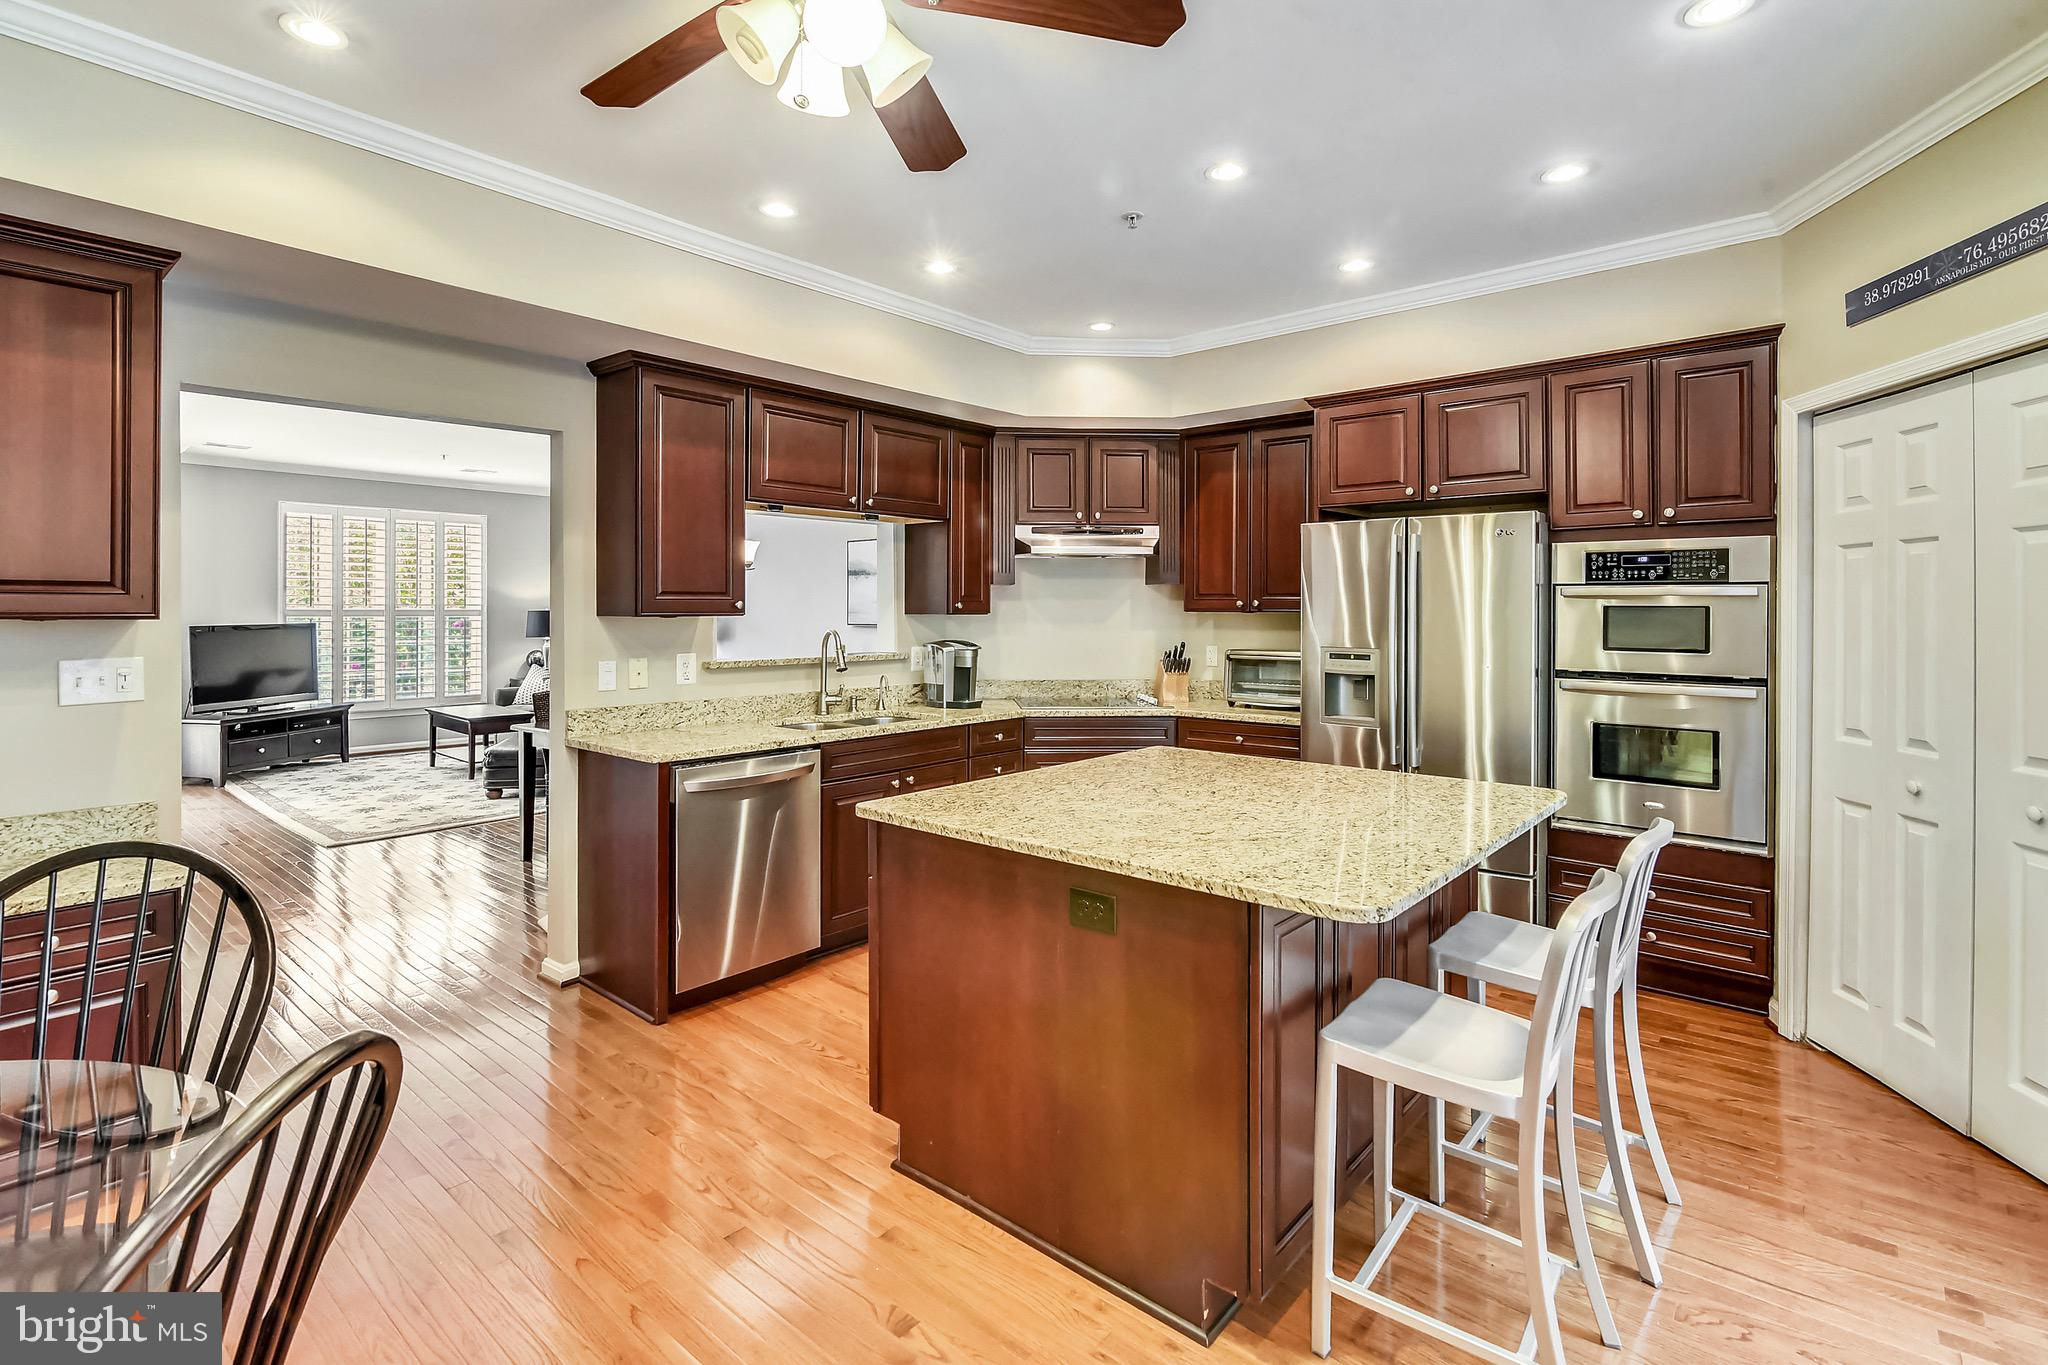 24 HARBOUR HEIGHTS Dr, Annapolis, MD, 21401